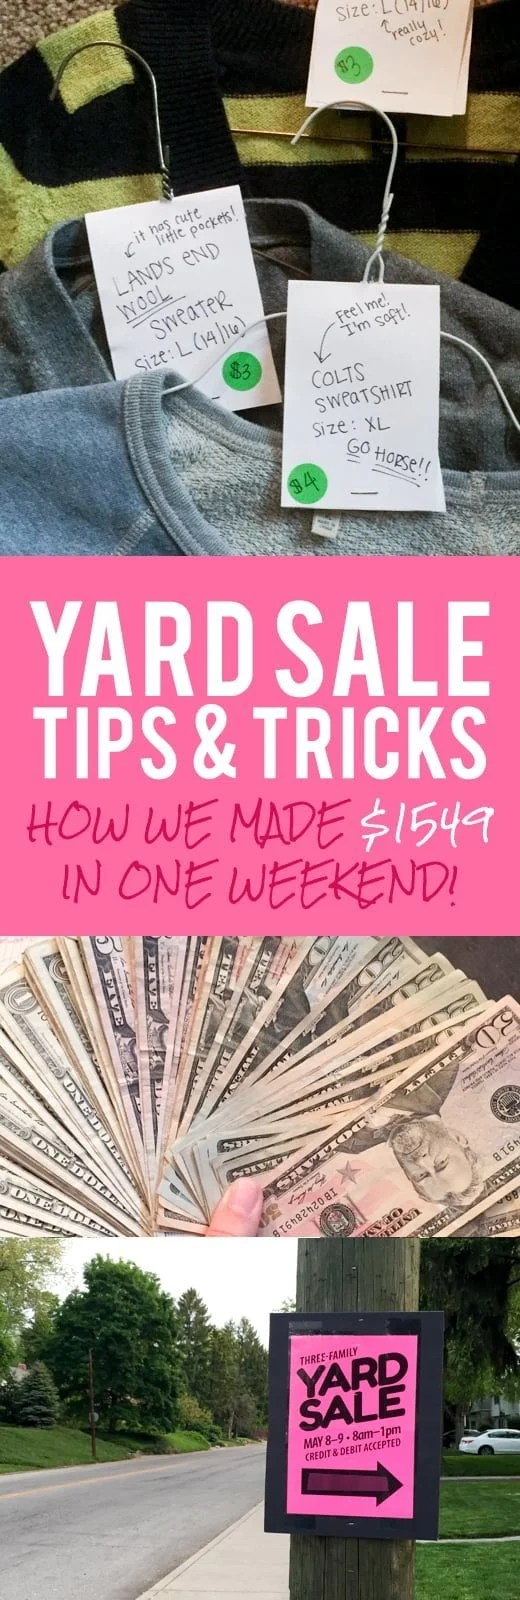 Garage Sale Price Stickers Yard Sale Tips Tricks How We Made 1549